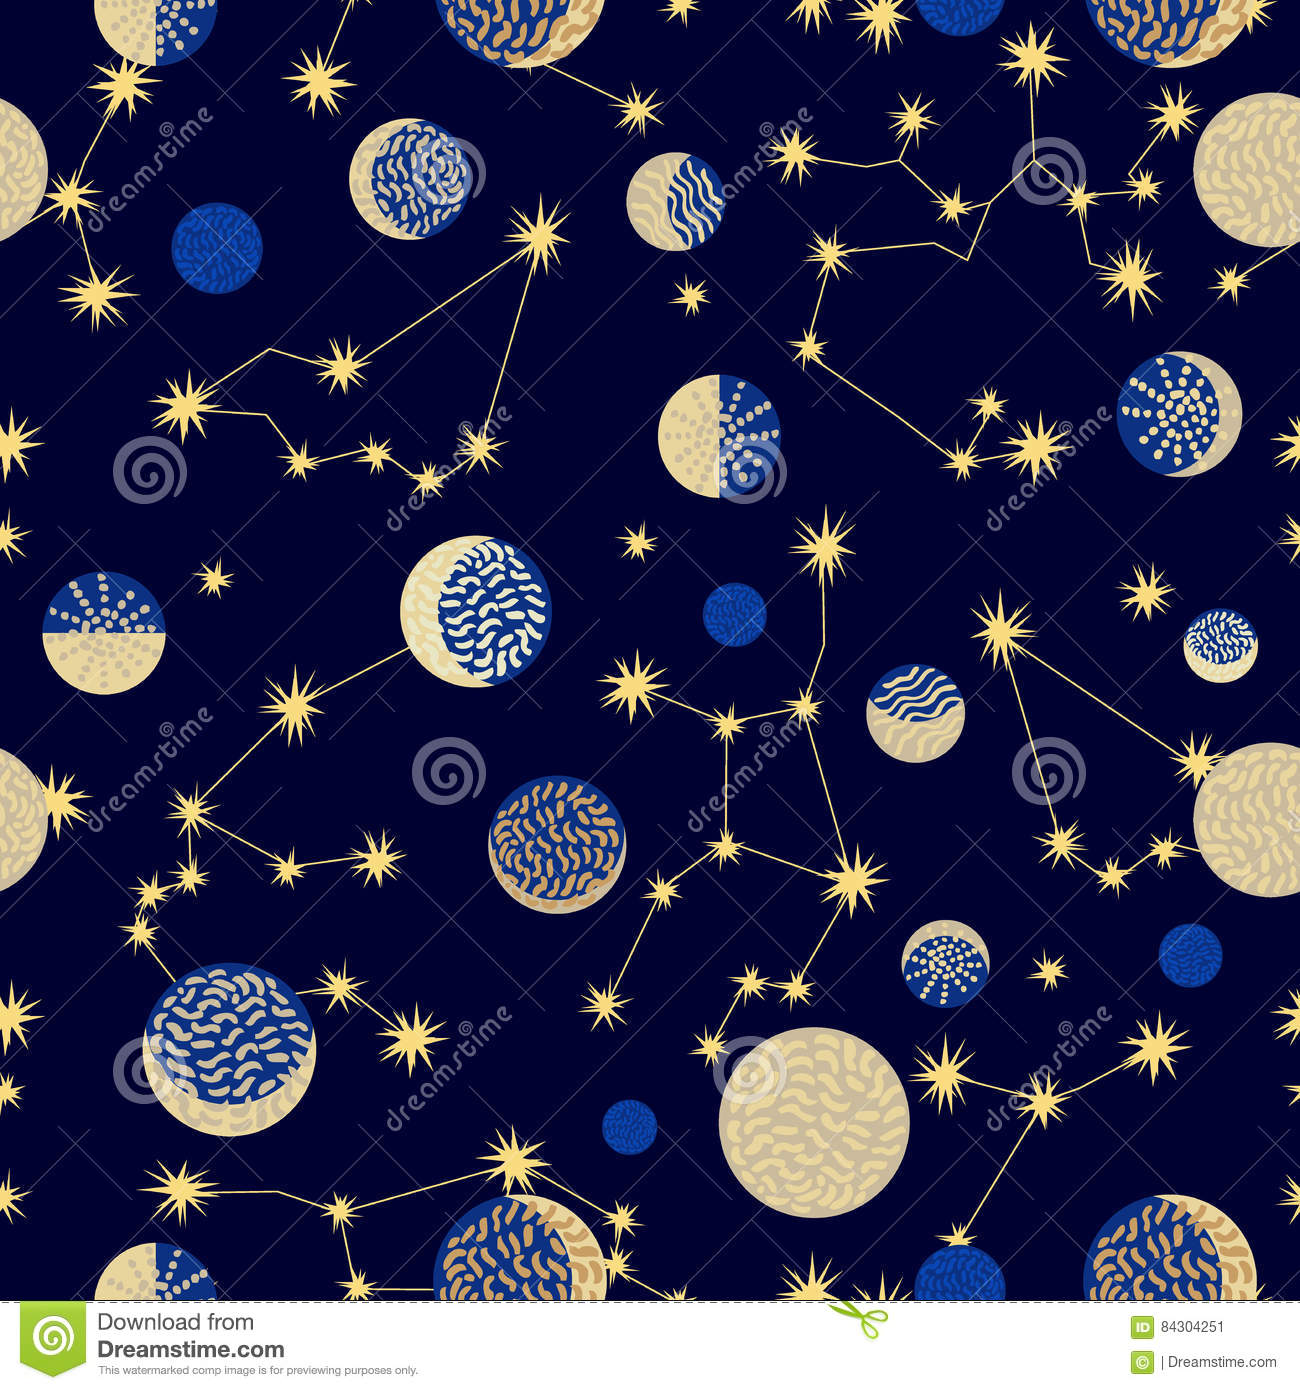 Zodiac sky. Abstract seamless vector pattern with constellations.